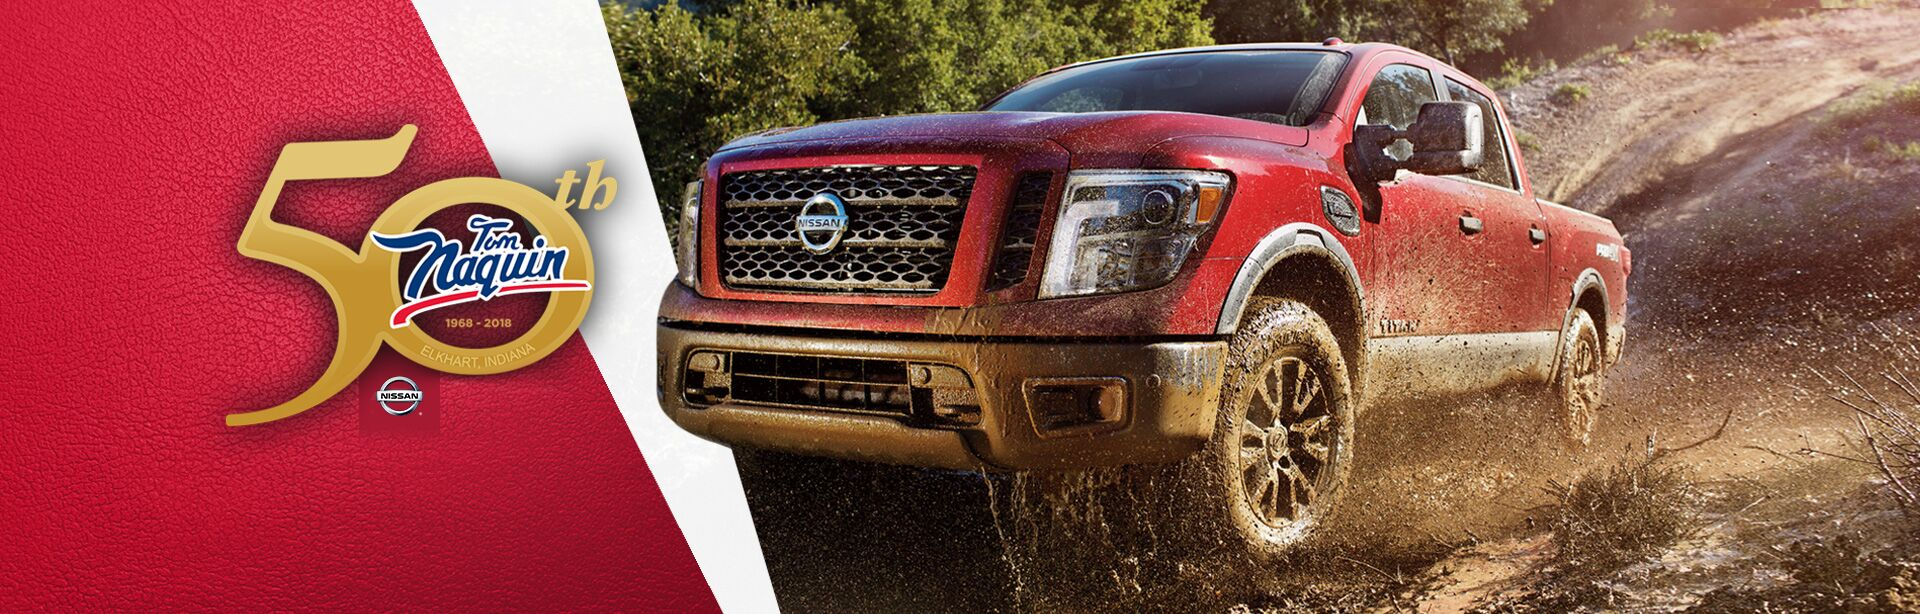 2017 Nissan Titan at Tom Naquin Nissan